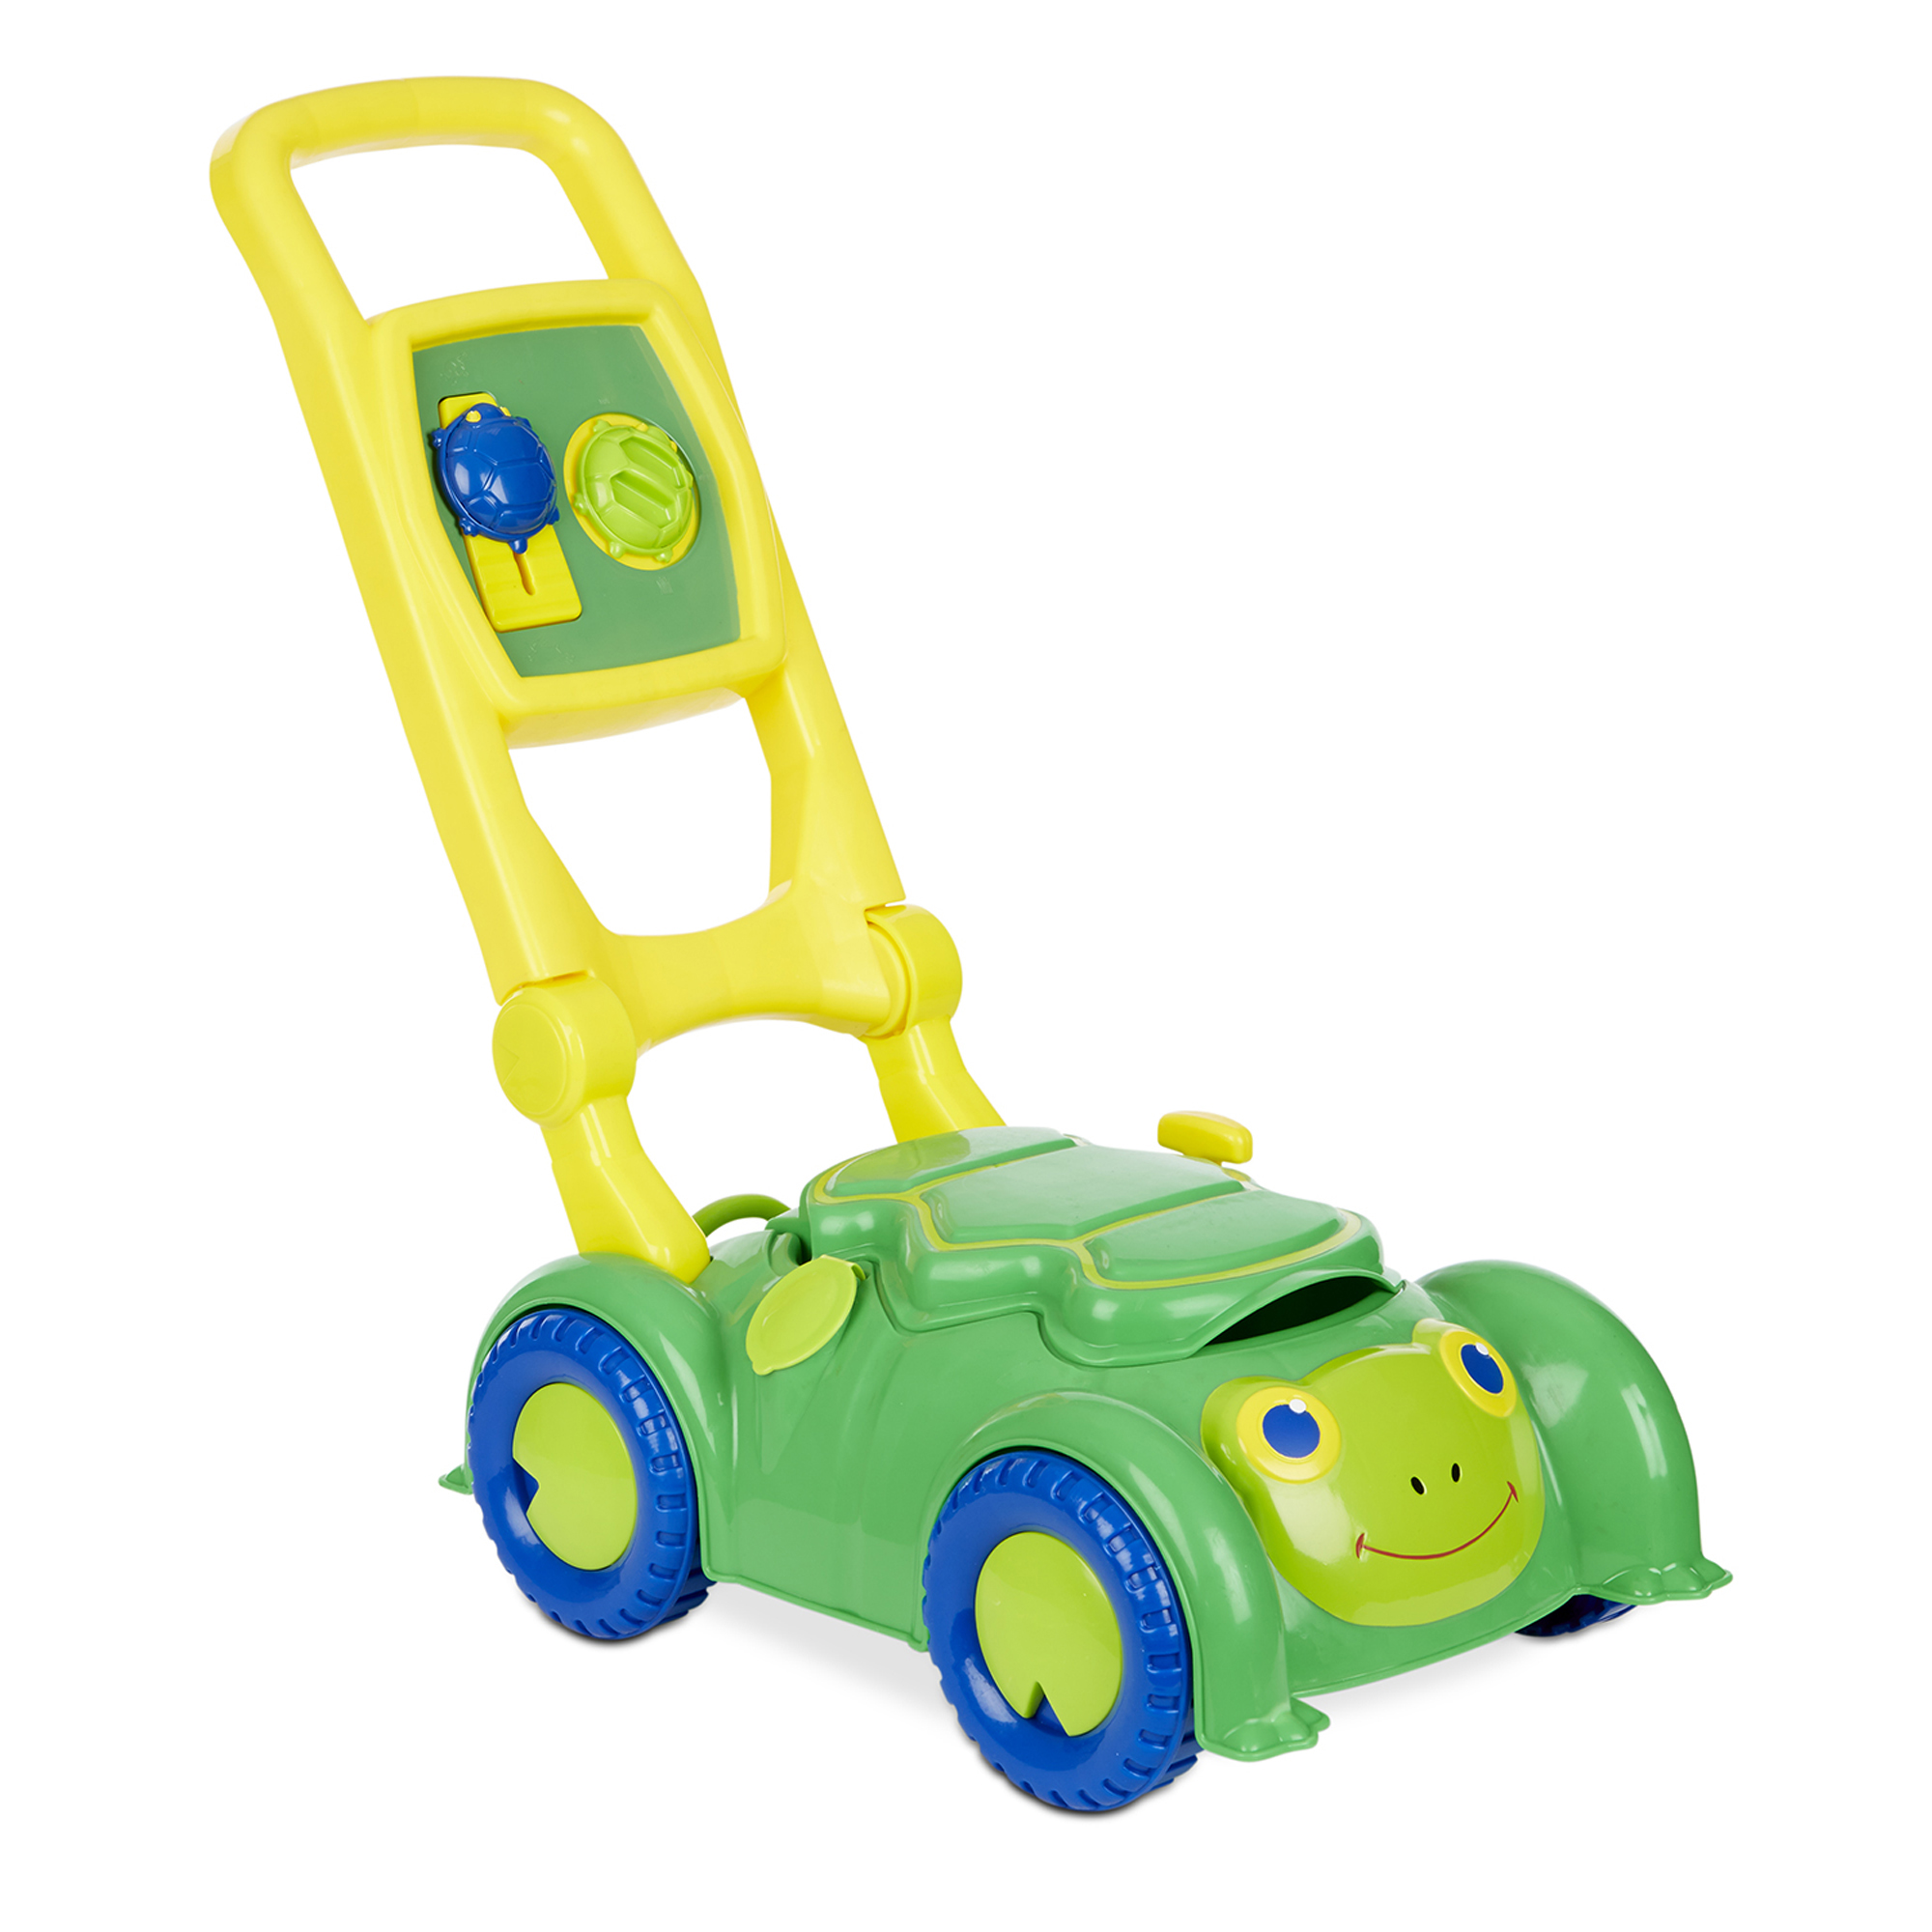 Melissa & Doug Sunny Patch Snappy Turtle Lawn Mower – Pretend Play Toy for Kids (Walmart)